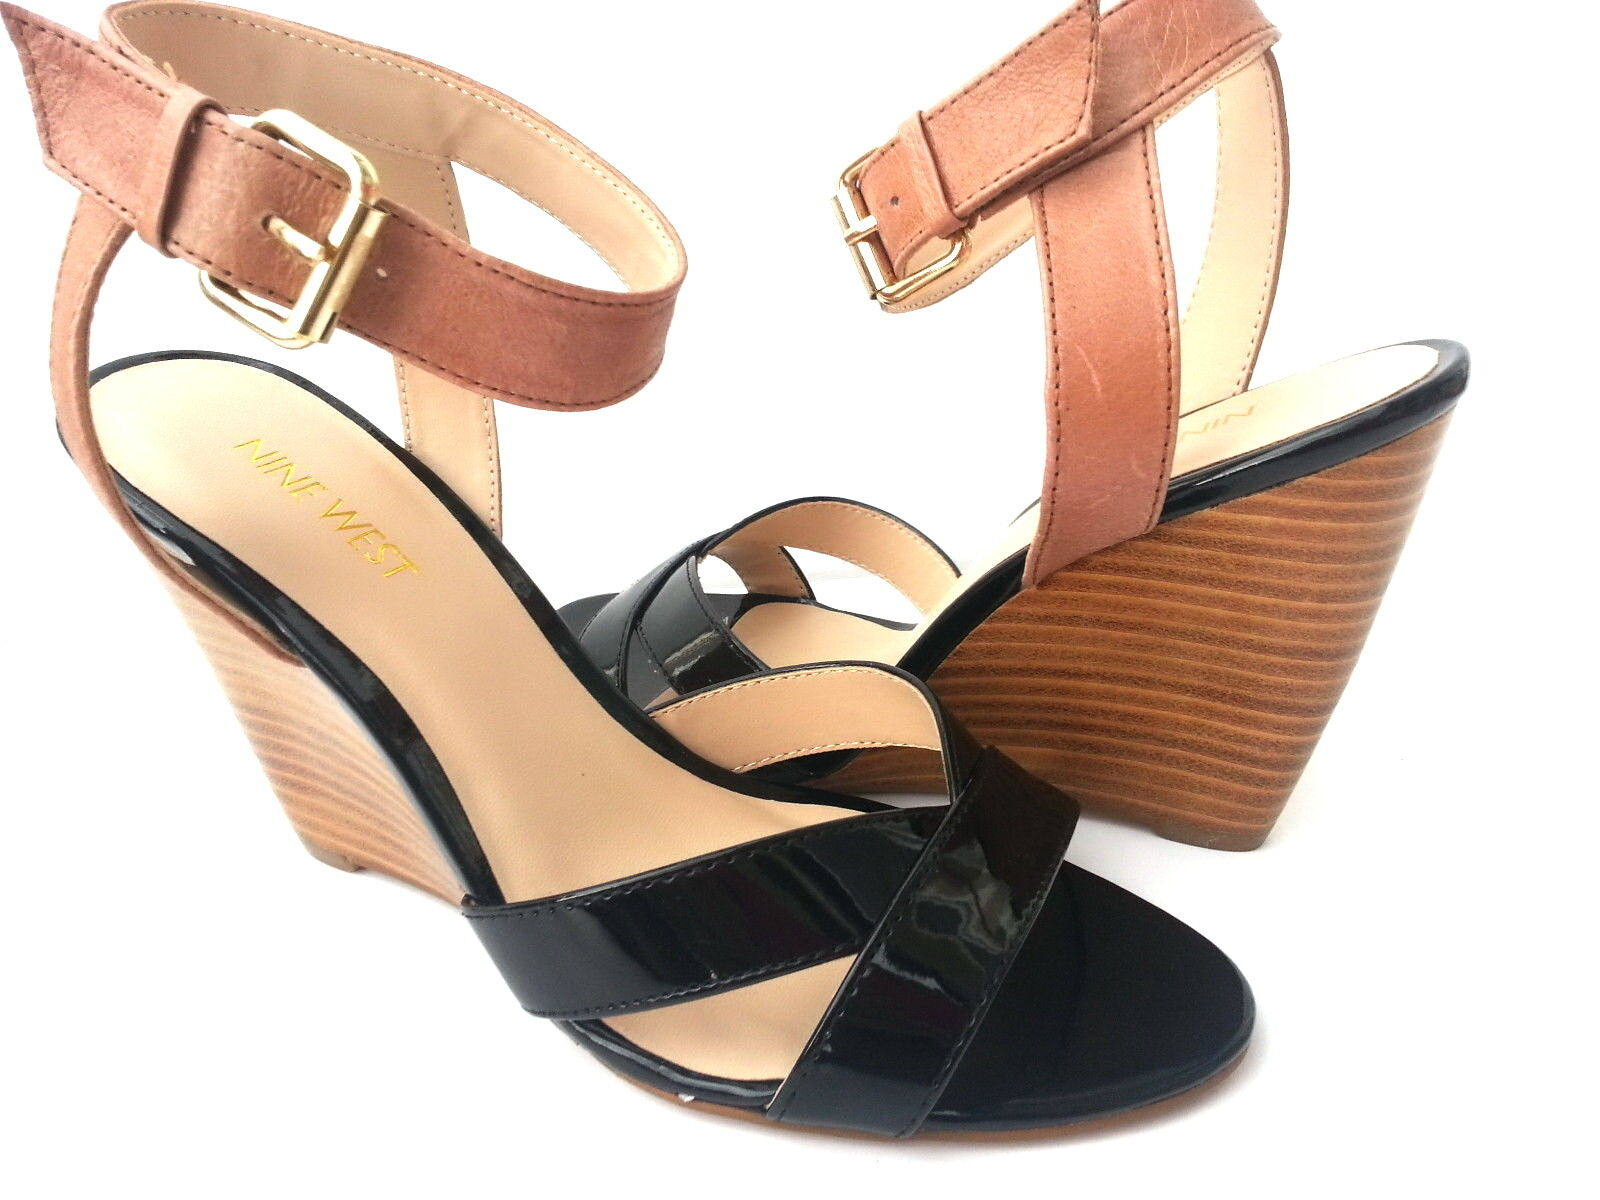 New Nine West Women's Wedge Leather shoes